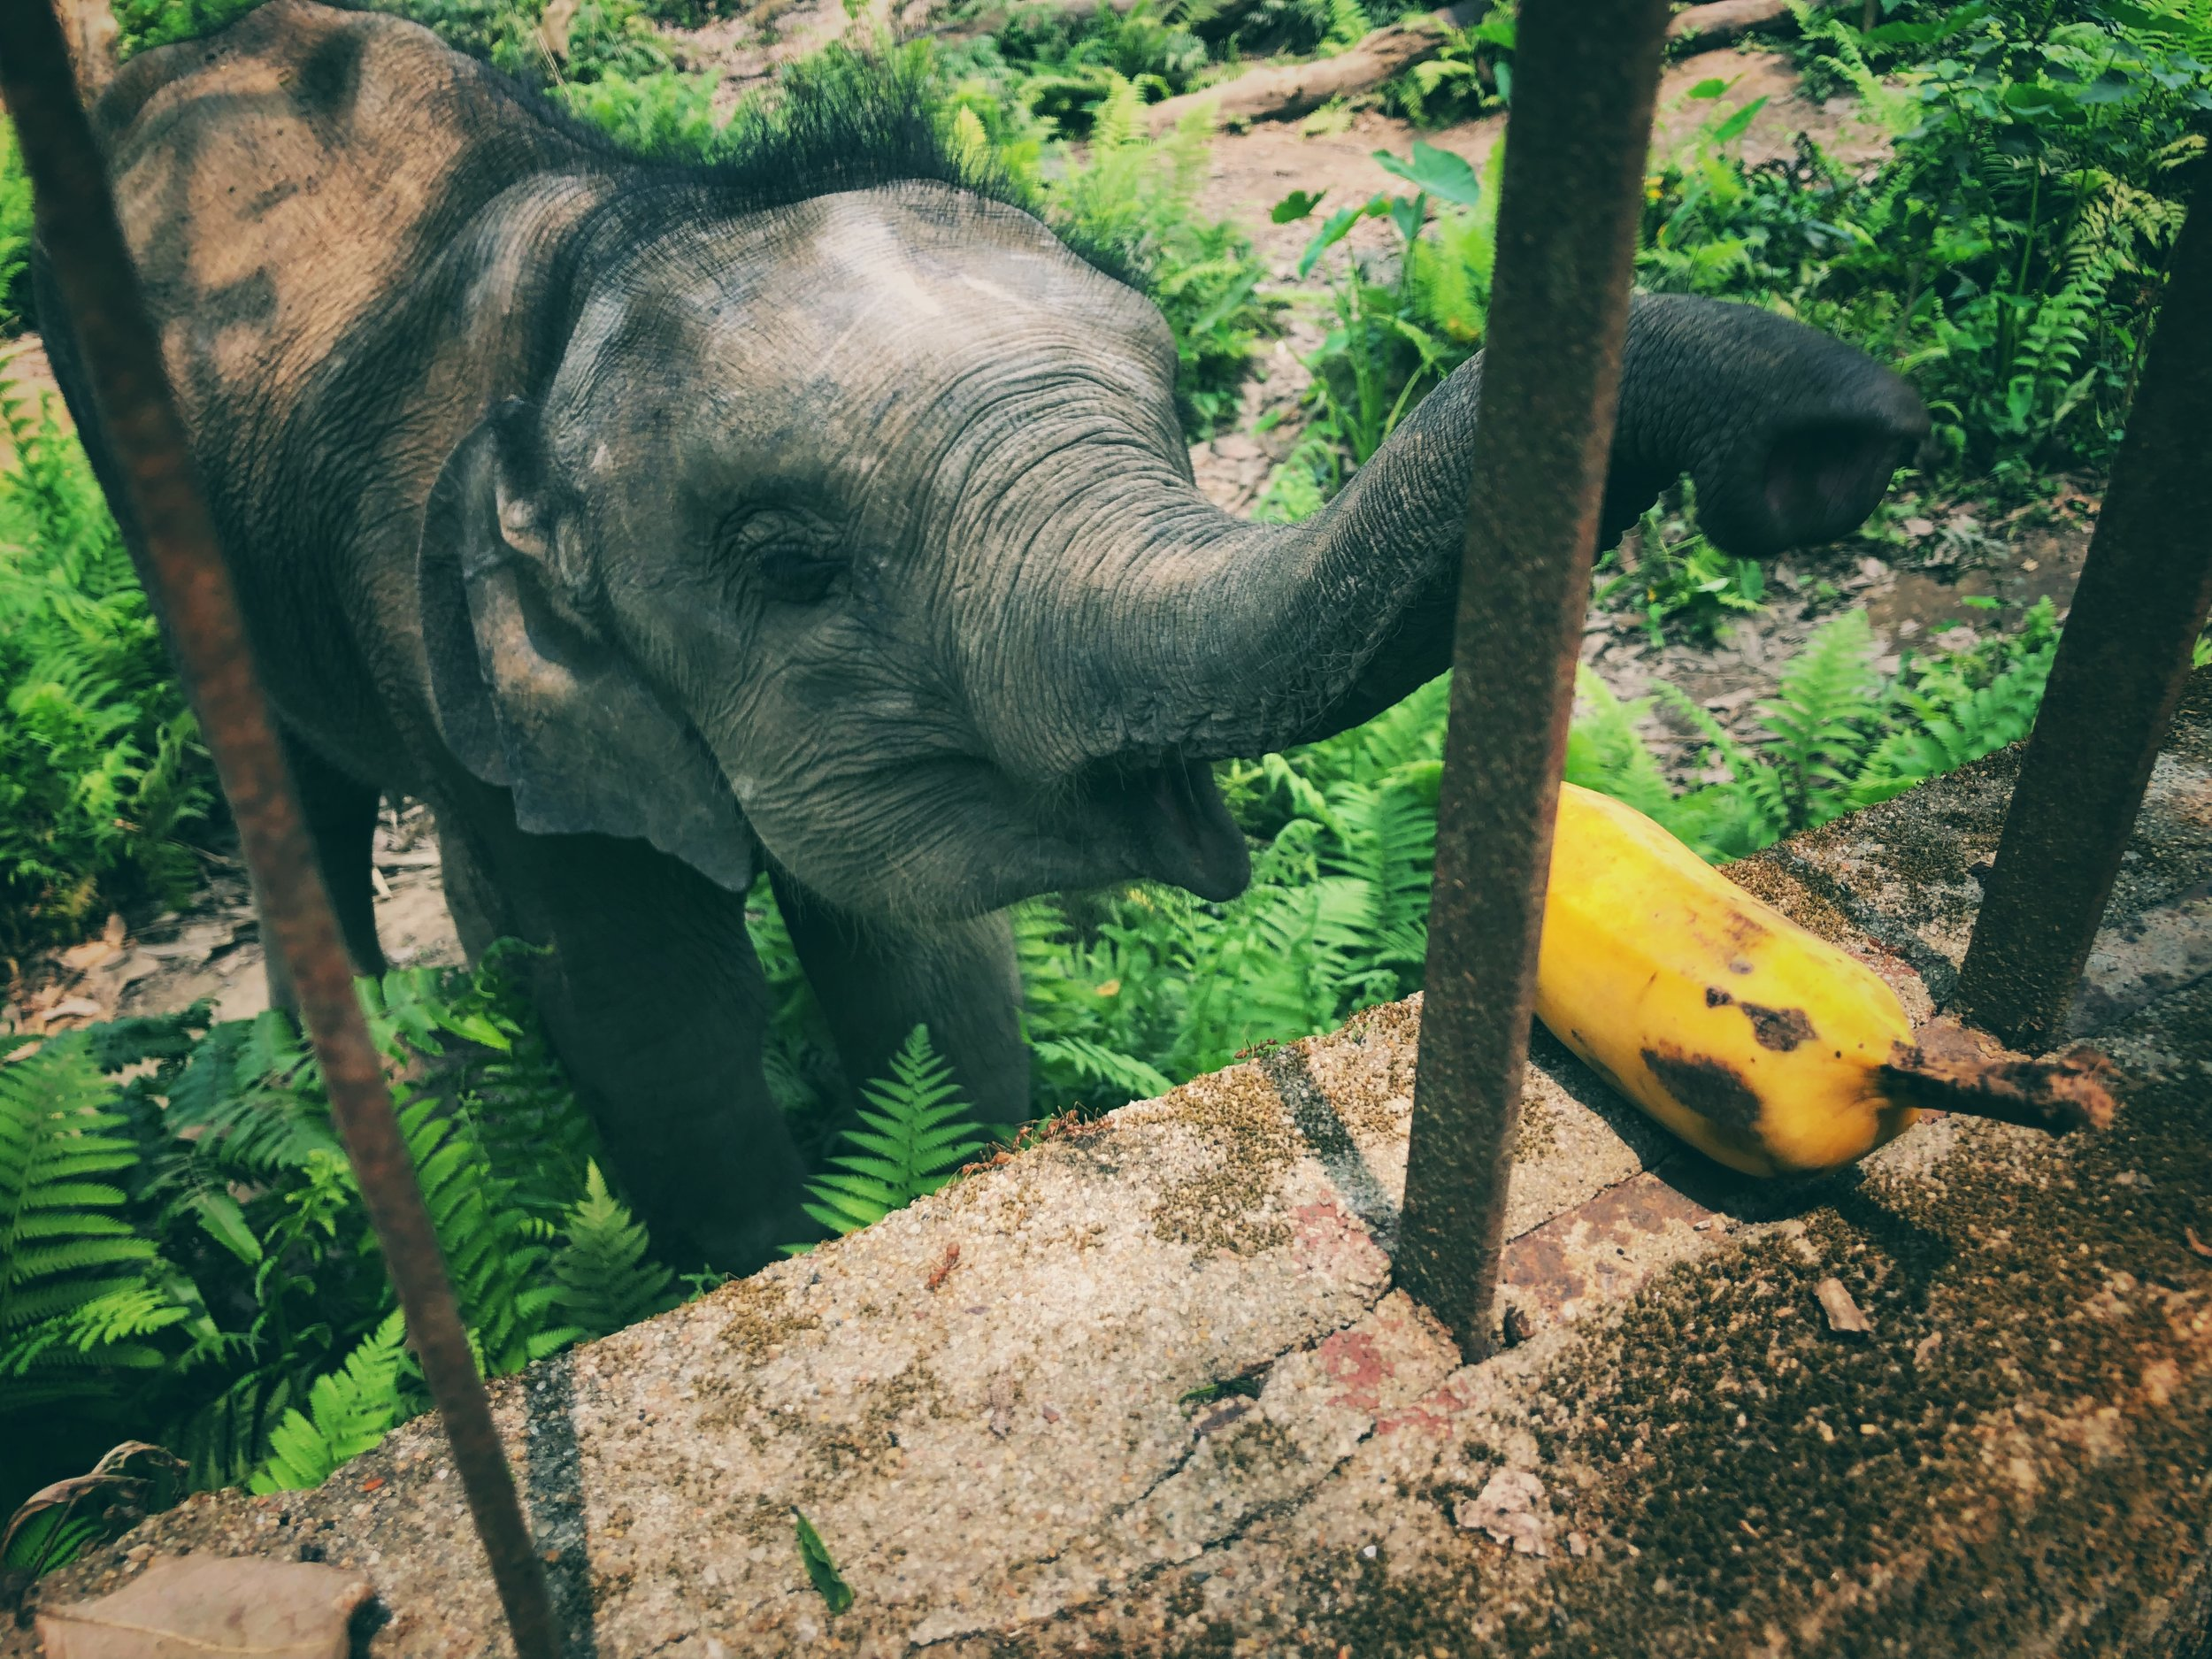 A motherless calf, a living victim of poaching, destined never to return to her forest home